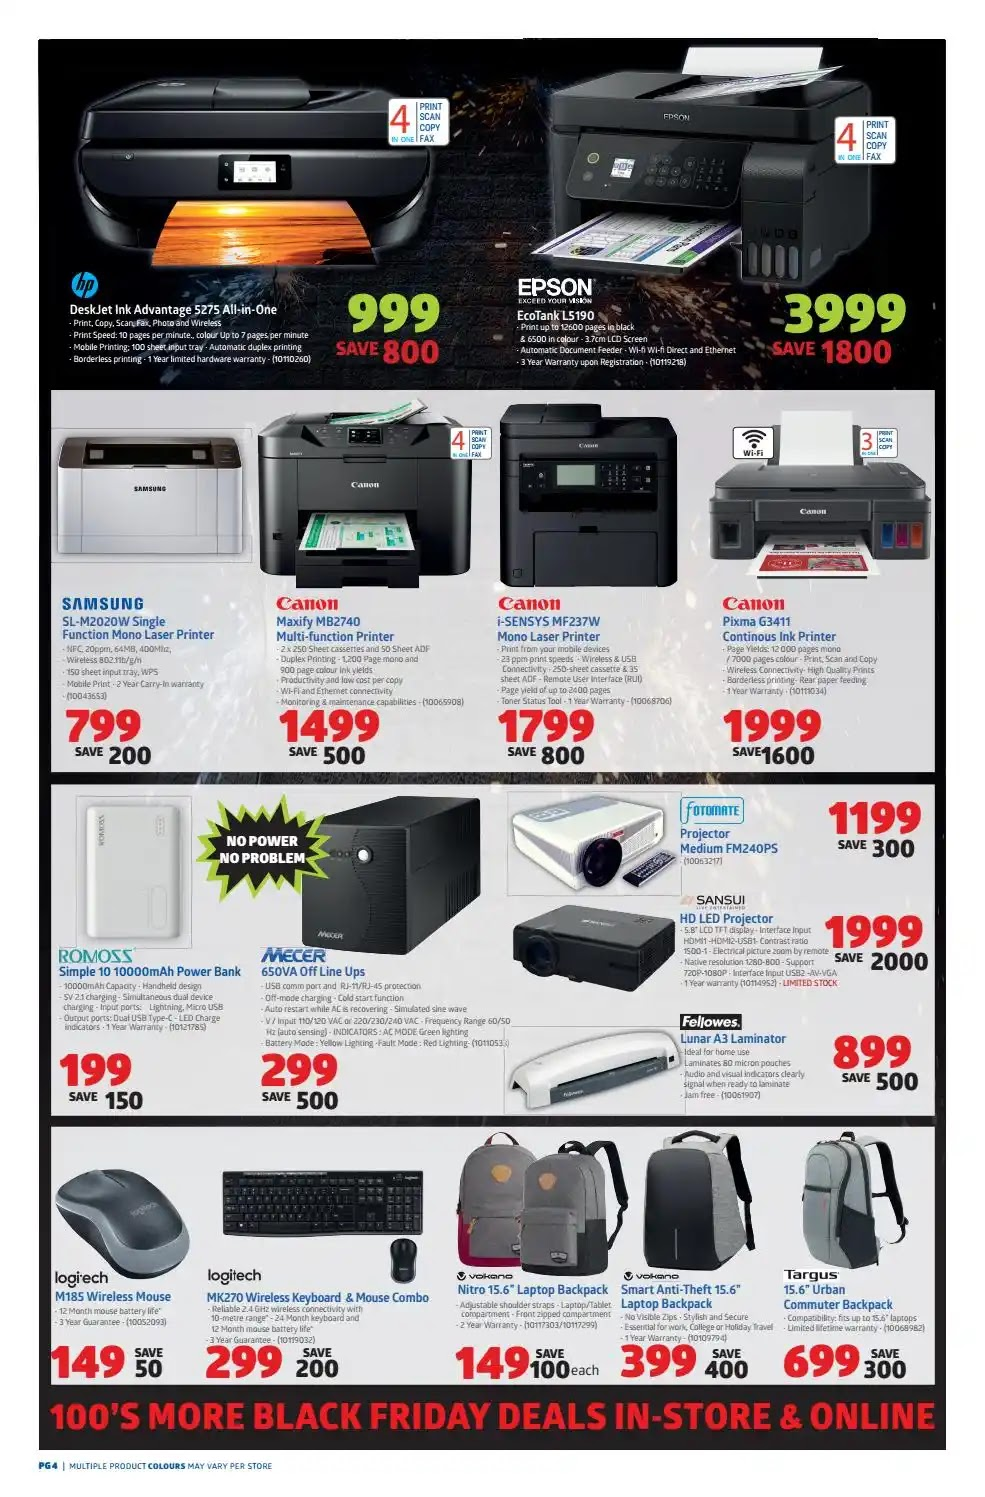 Incredible Connection Black Friday Deals  -  Page 4